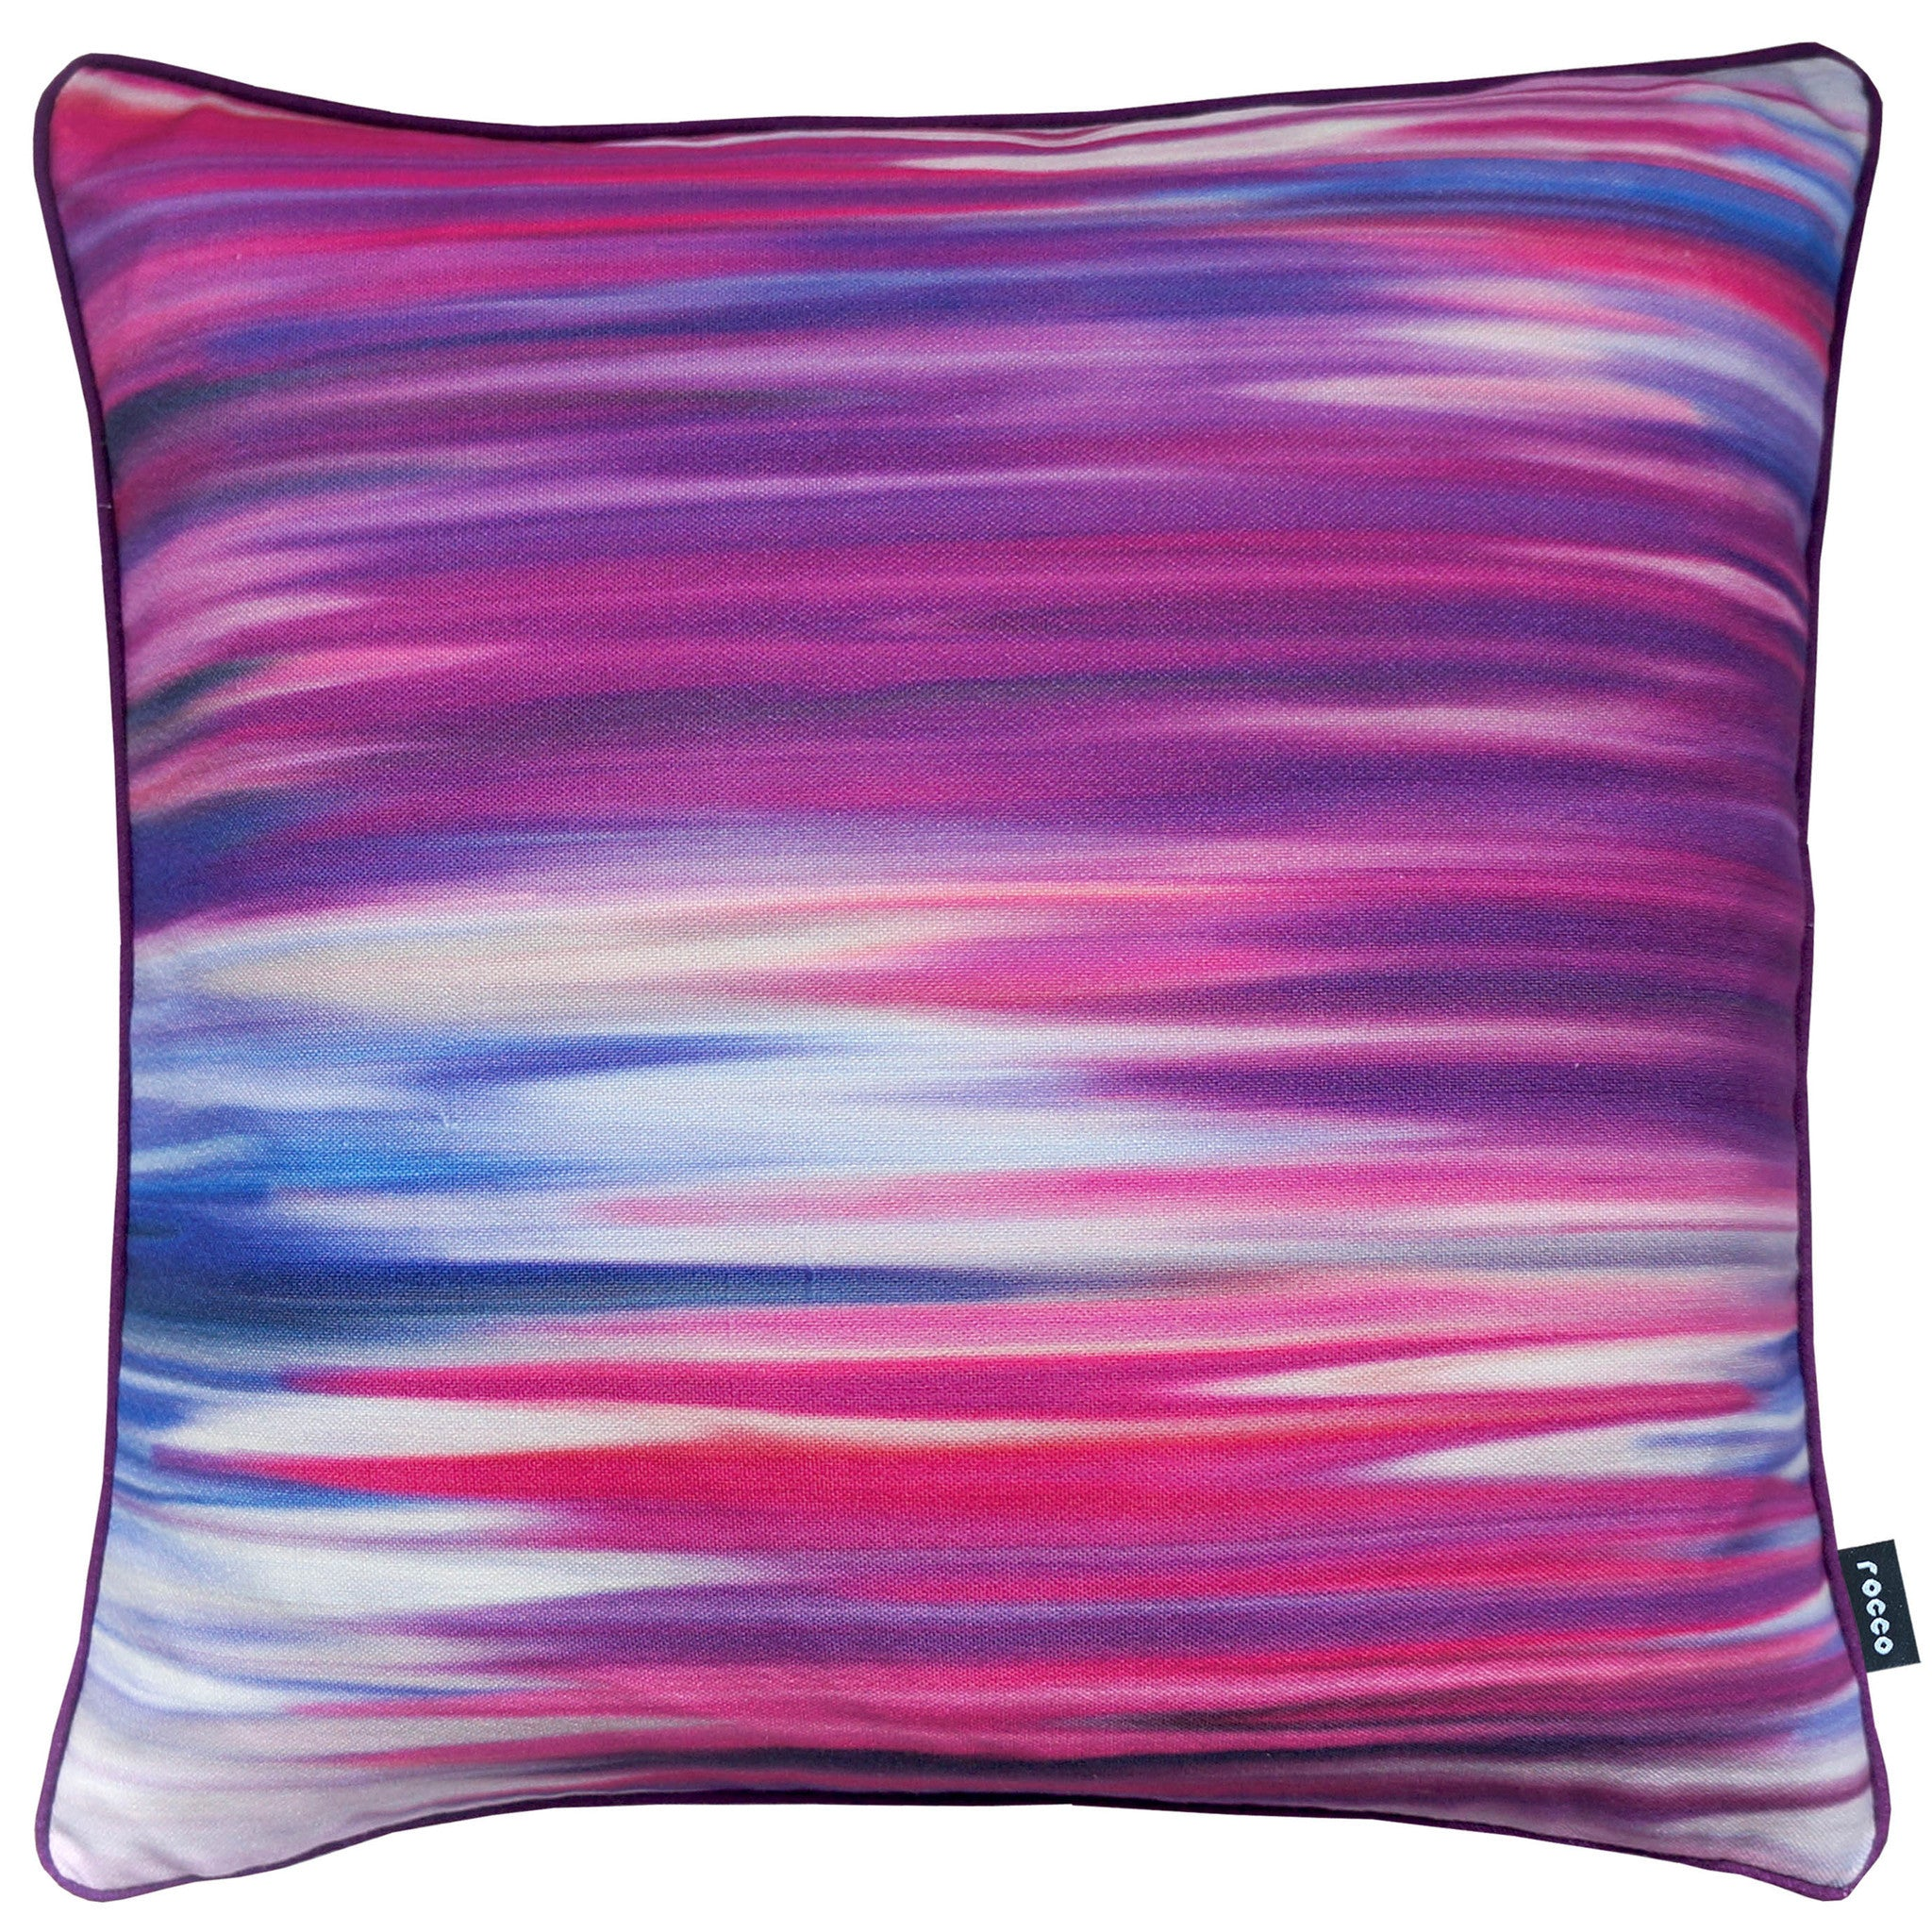 Rocco Motion Purple 43 x 43cm Filled Cushion - Set Of 4